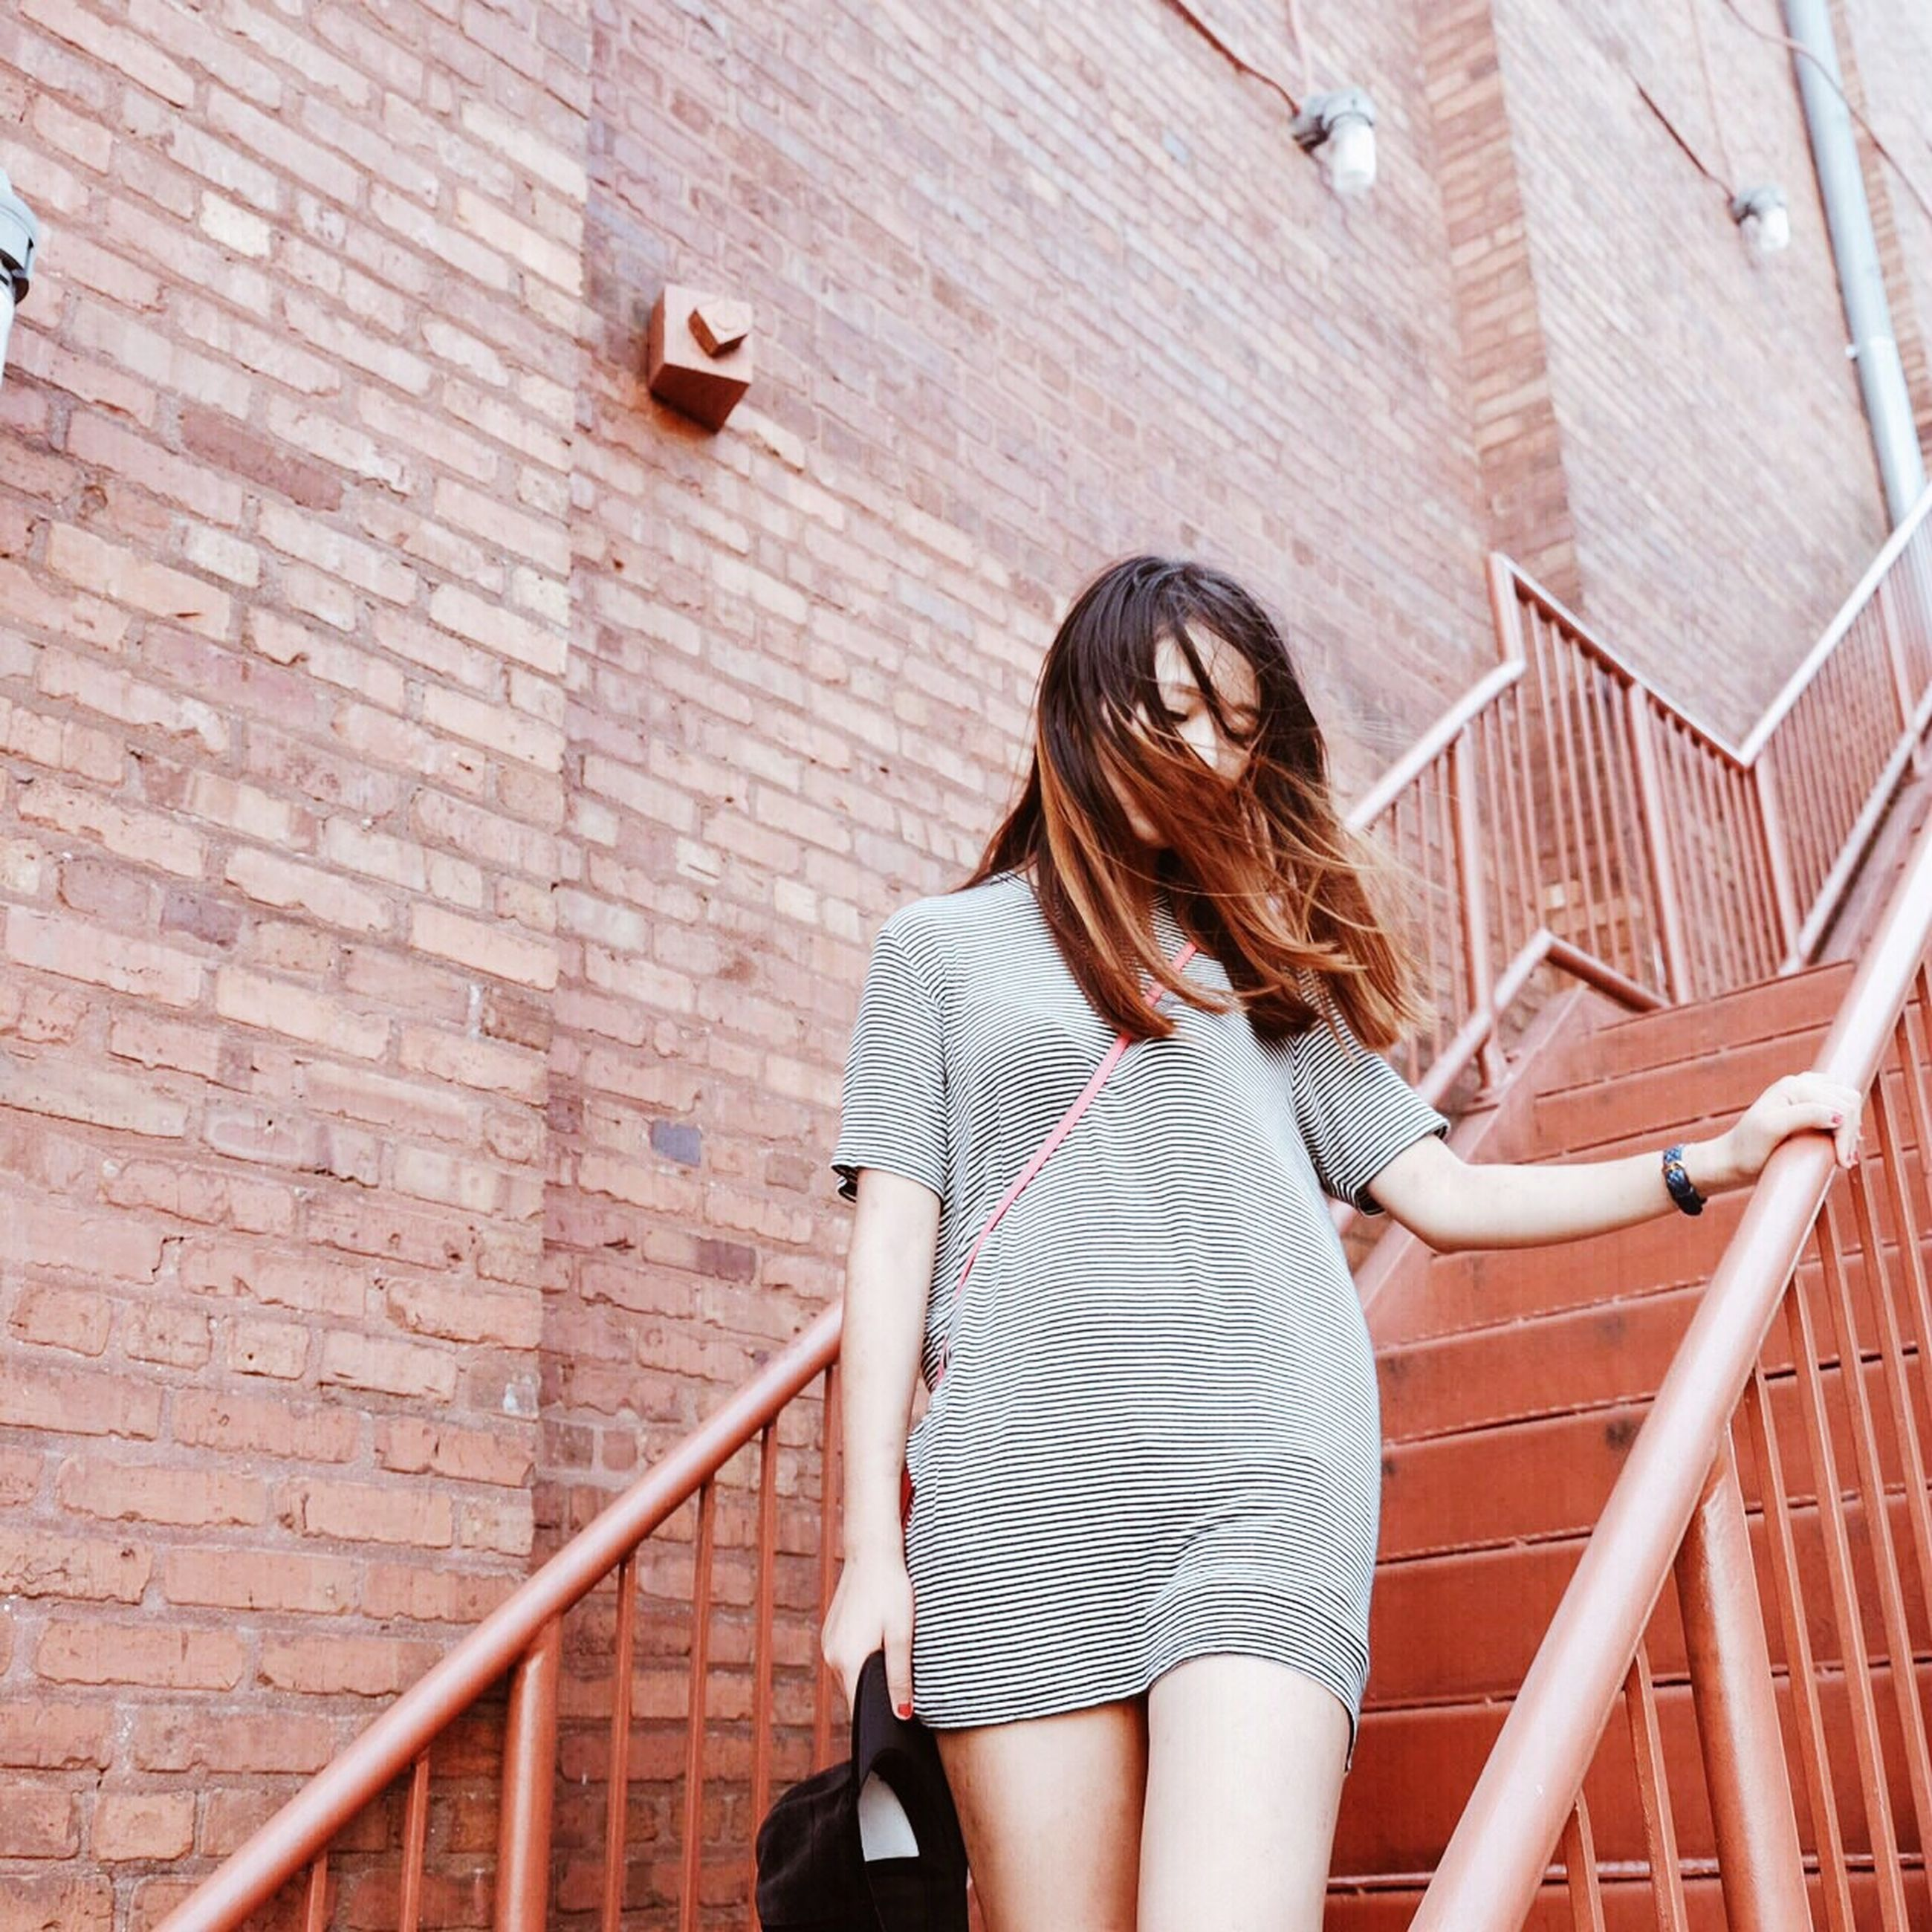 lifestyles, standing, young women, leisure activity, young adult, casual clothing, person, full length, wall - building feature, built structure, architecture, three quarter length, long hair, day, railing, brick wall, outdoors, sitting